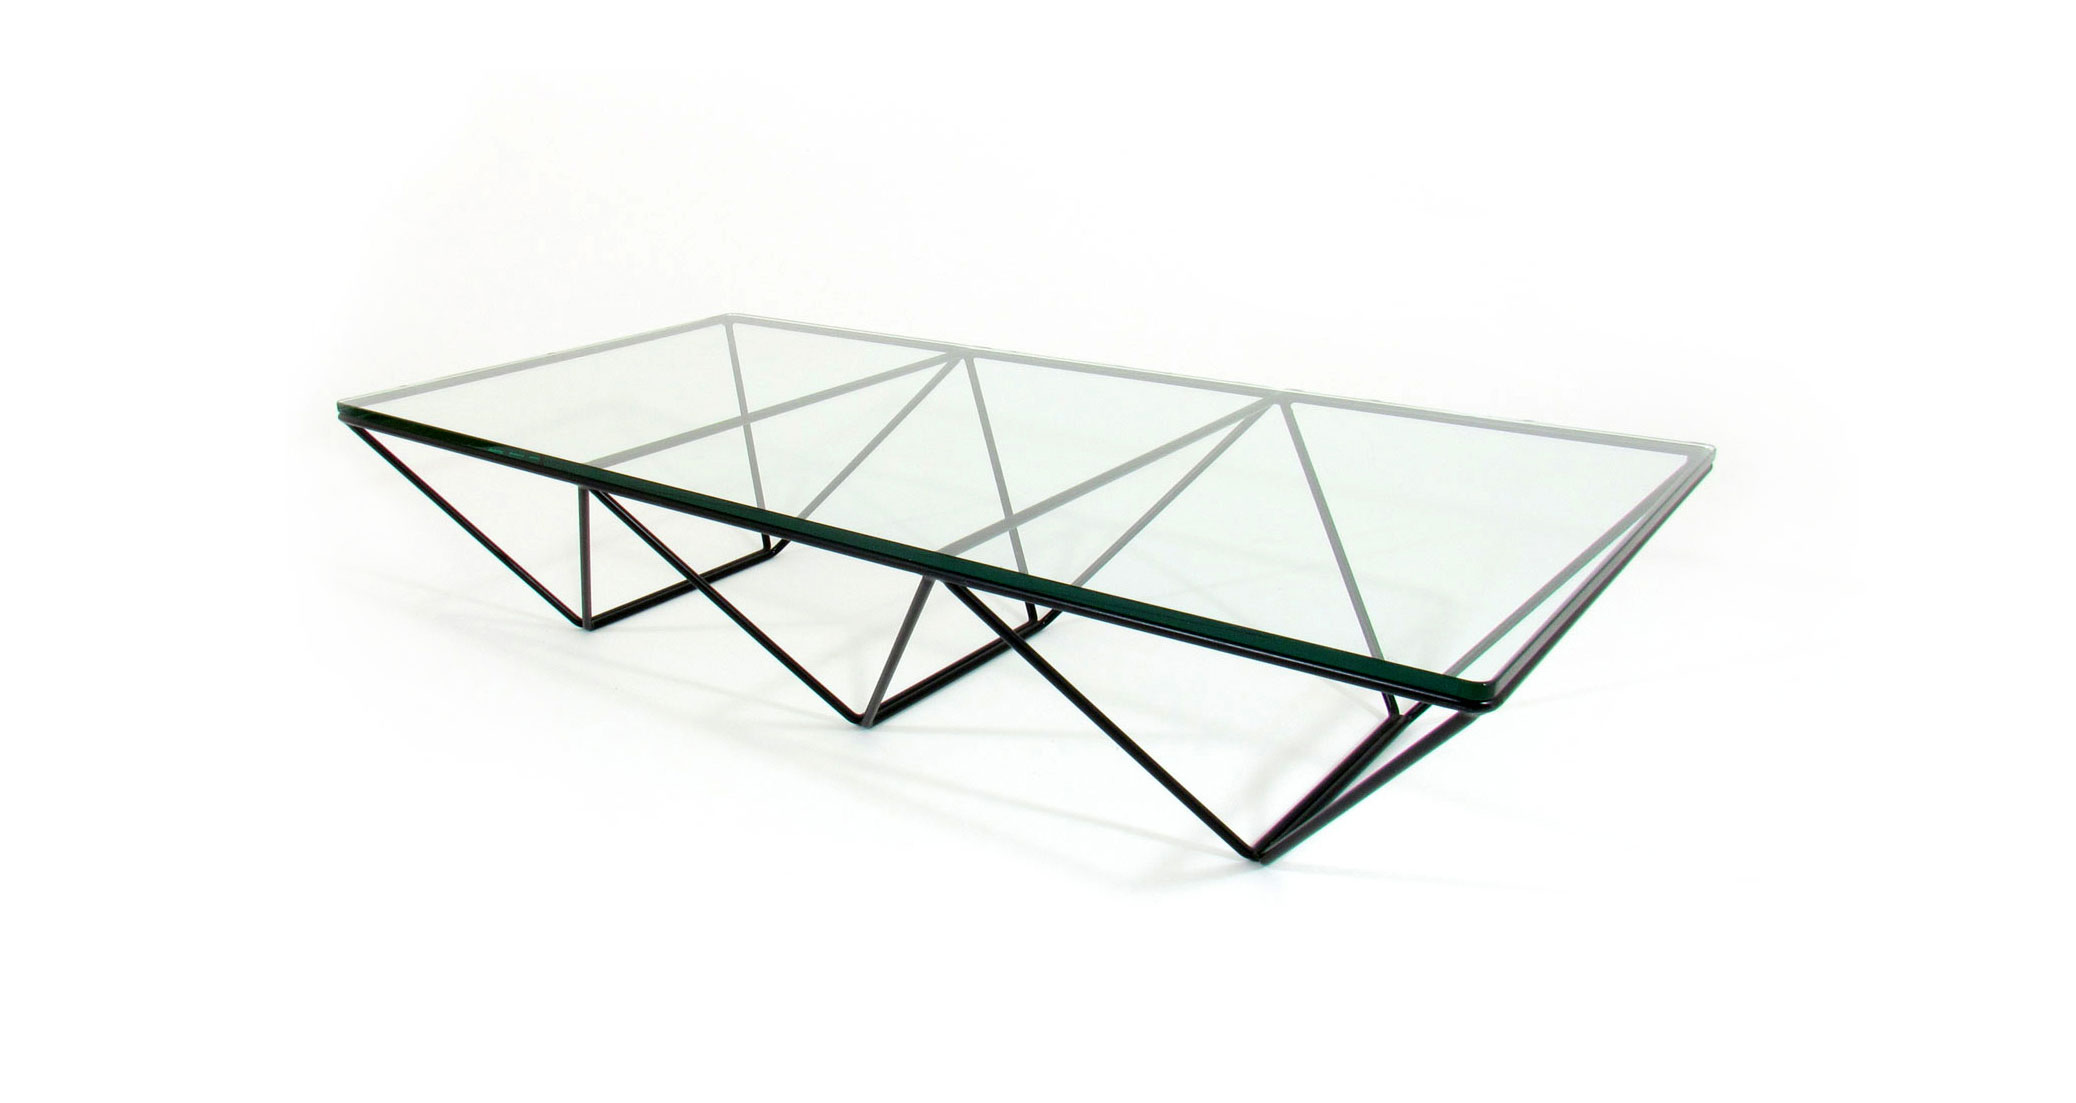 alanda piva table metal glass crystal tavolo cristallo metallo iconic design vintage furniture